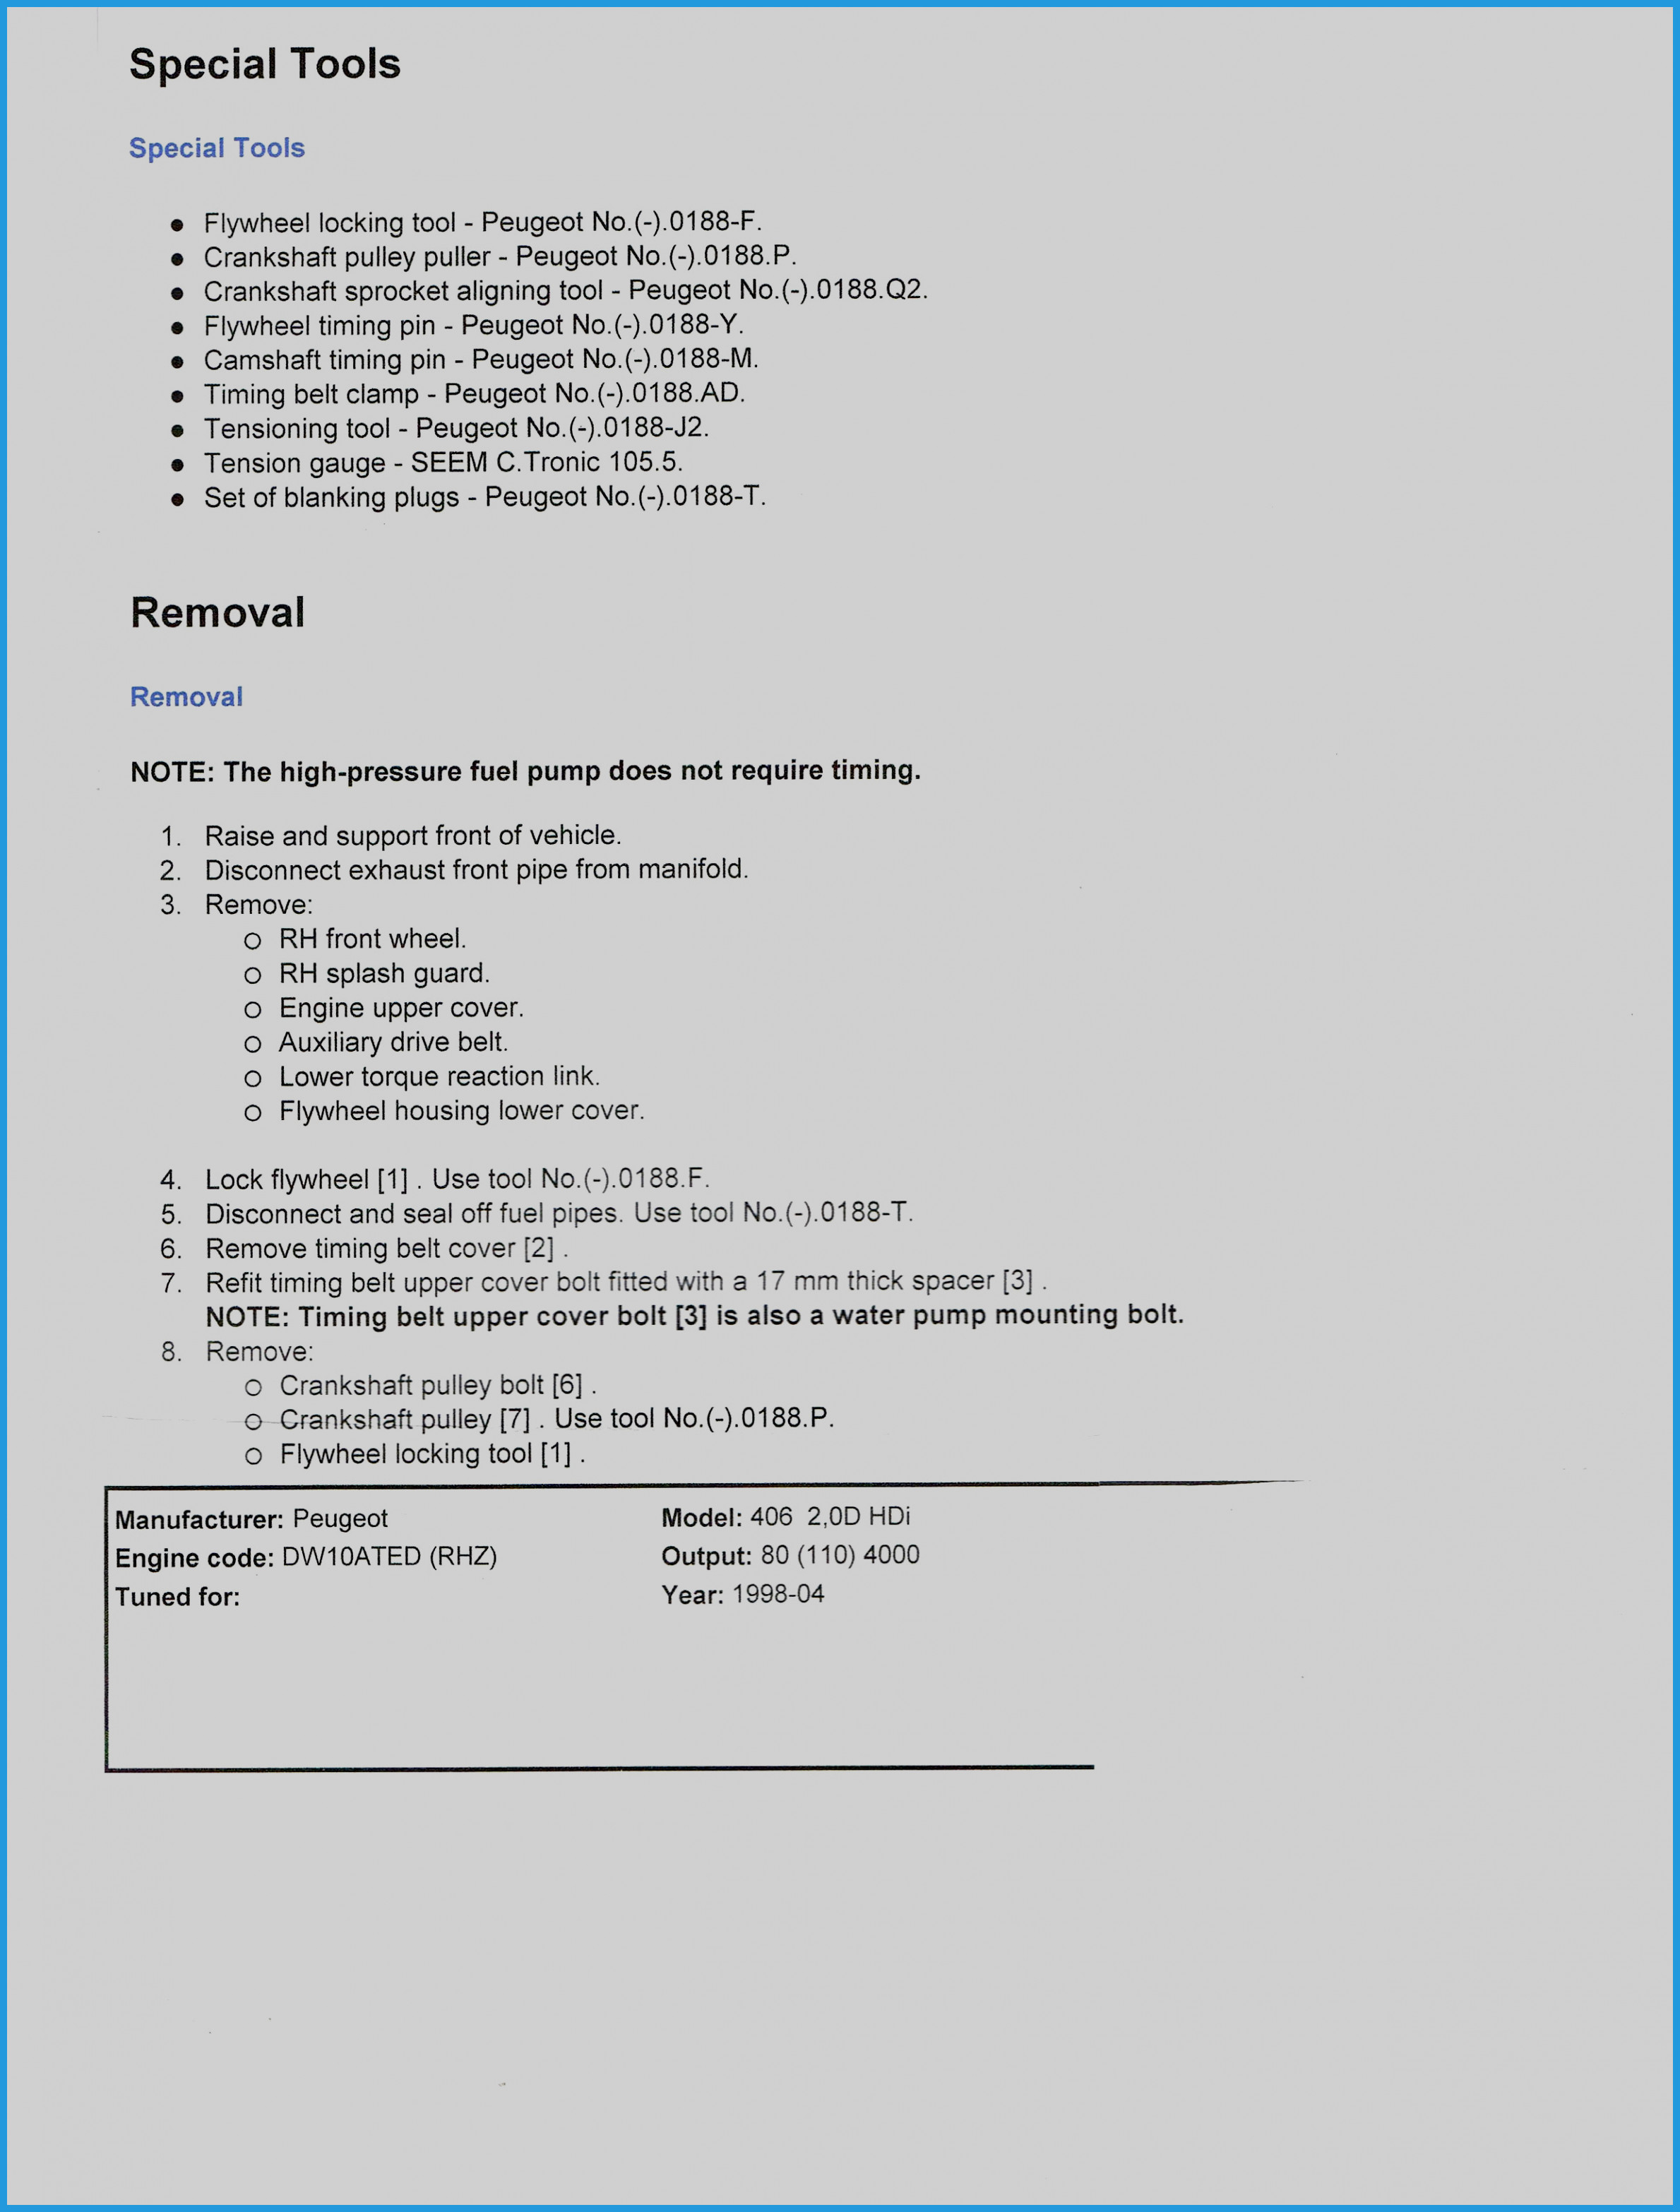 Mechanical Engineering Resume Objective - Cover Letter Resume Template for You